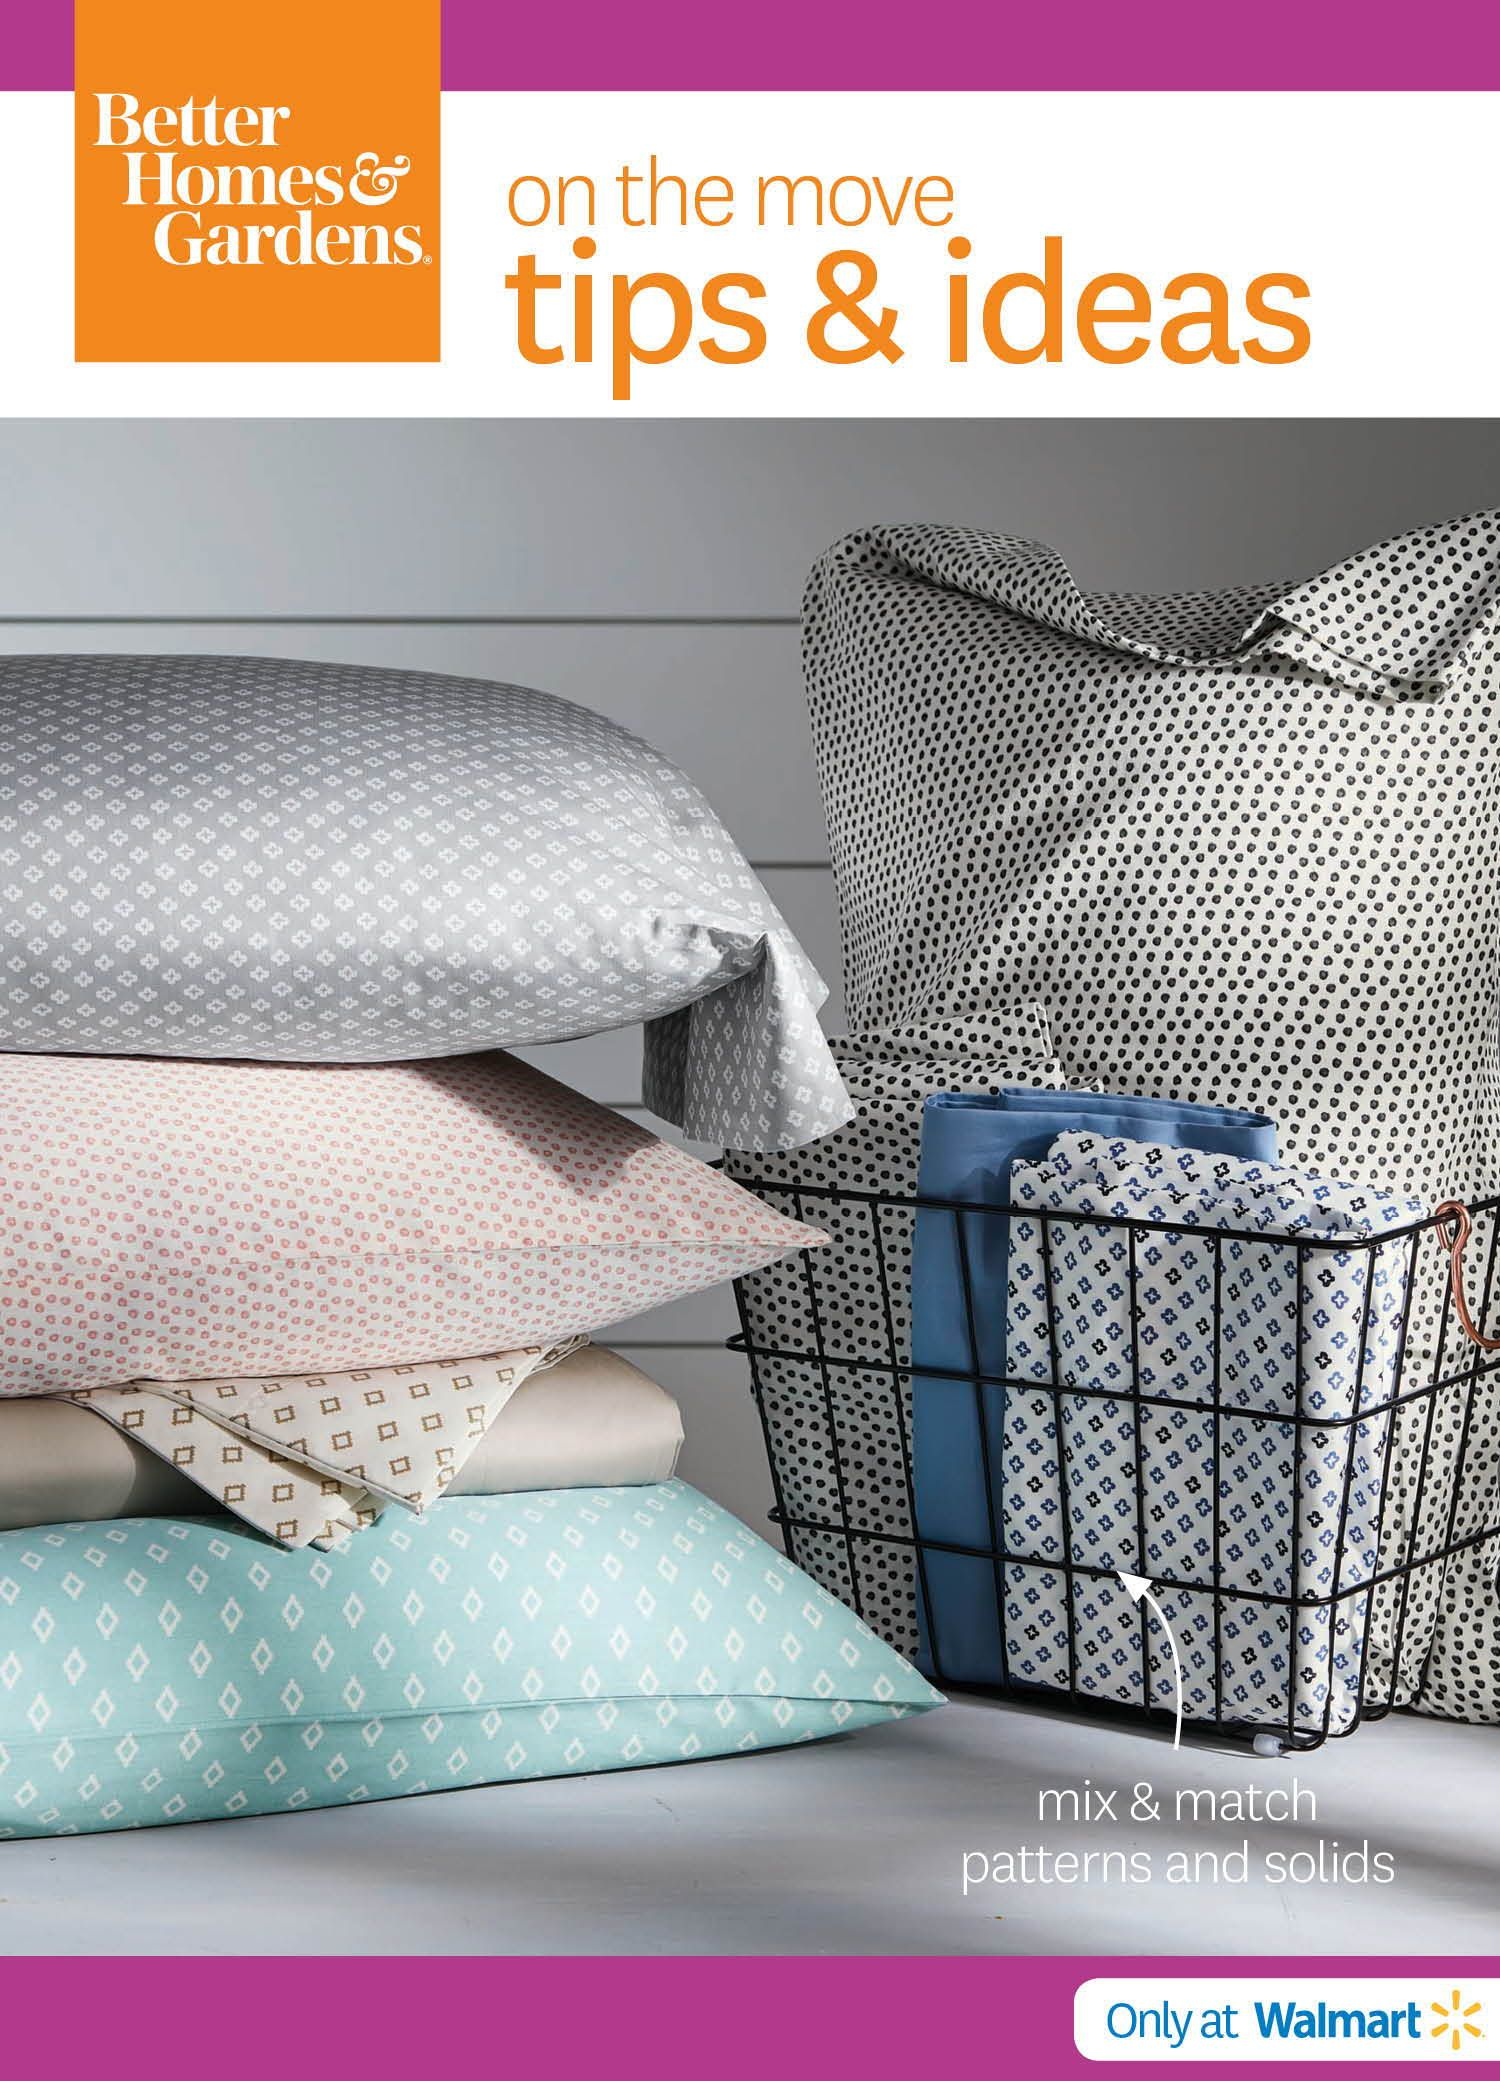 Better homes and gardens thread count sheet collection tips